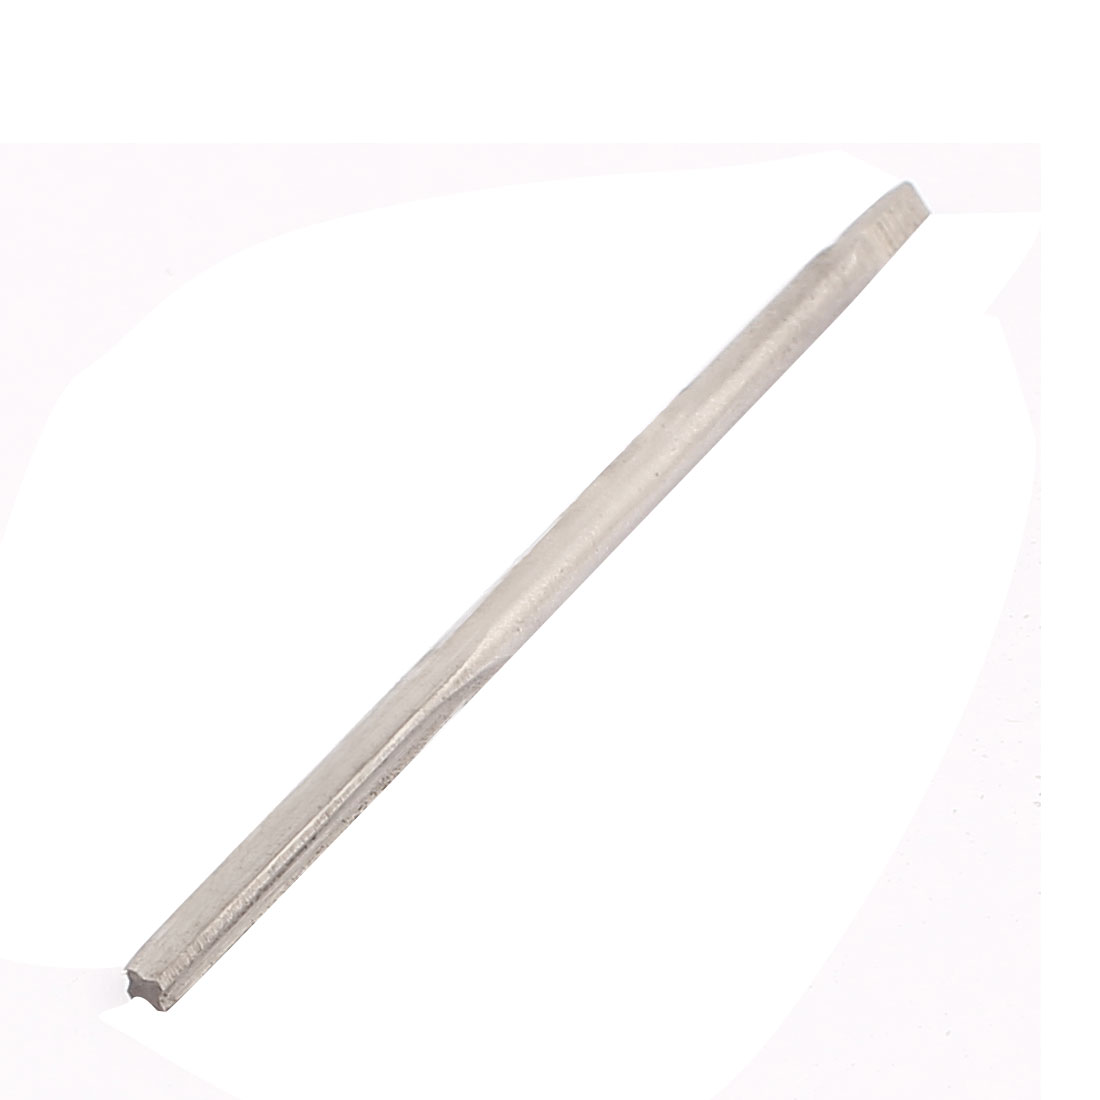 2.5mm Cutting Diameter 57mm Long 4 Flutes Square End Hand Reamer Cutter Tool